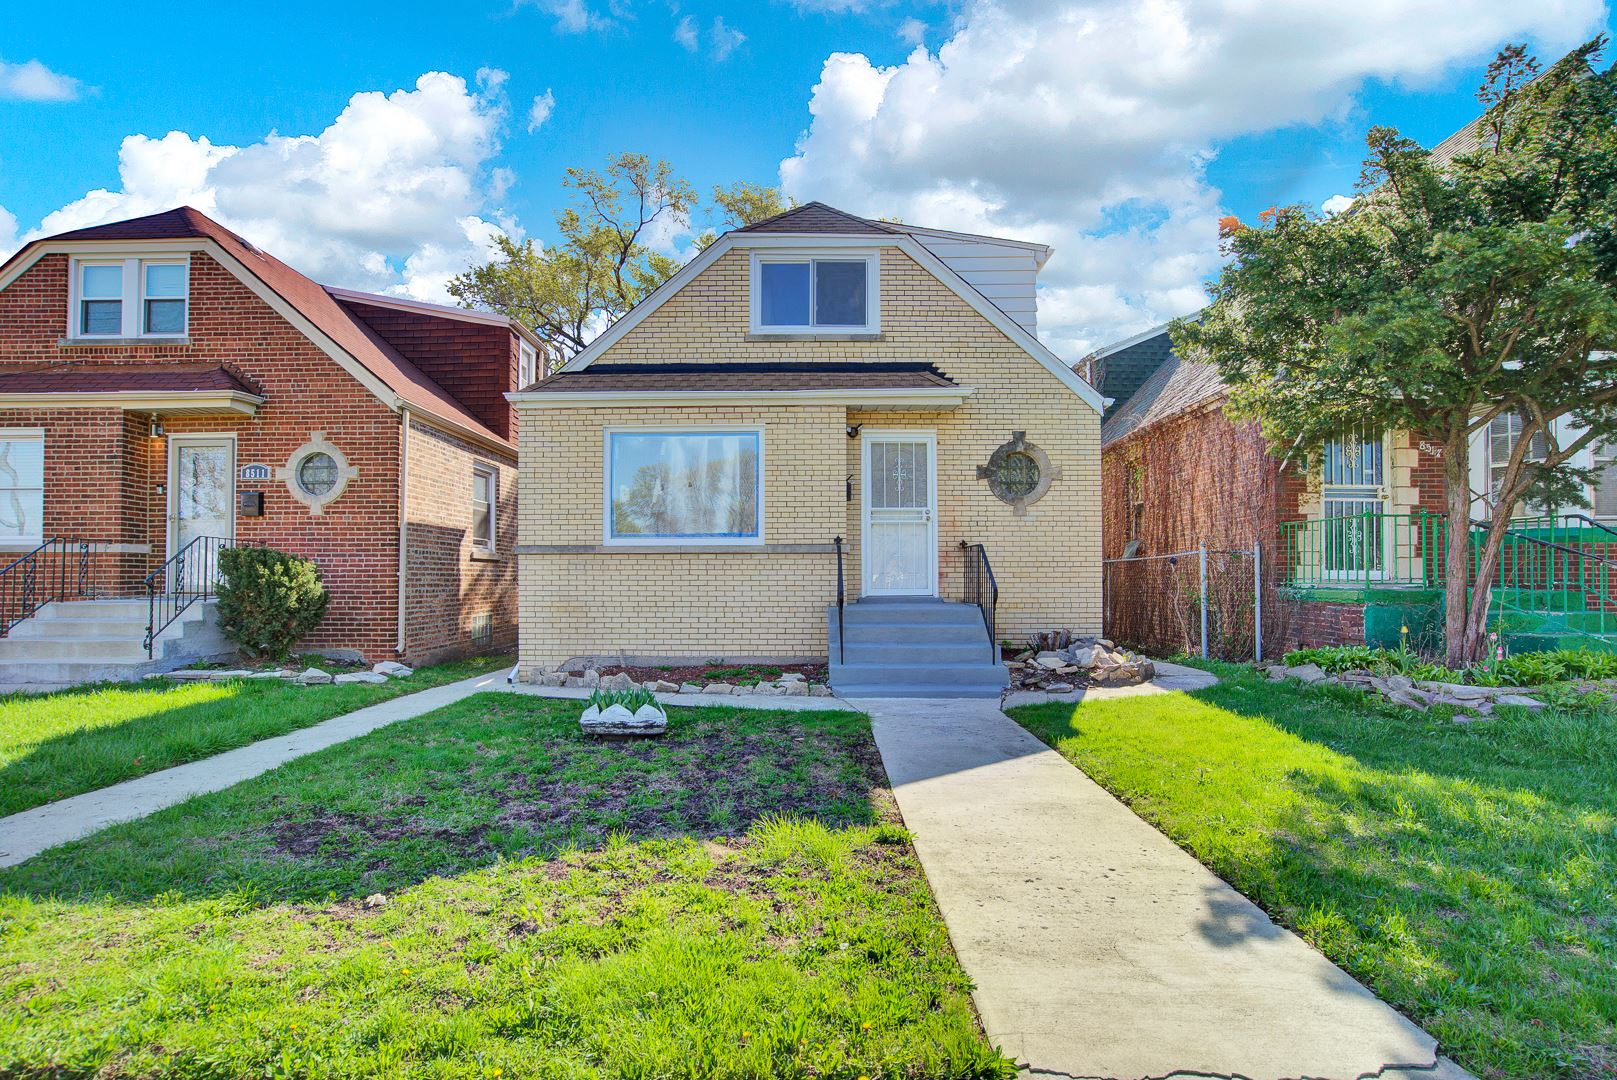 Photo for 8513 S King Drive, Chicago, IL 60619 (MLS # 11071608)